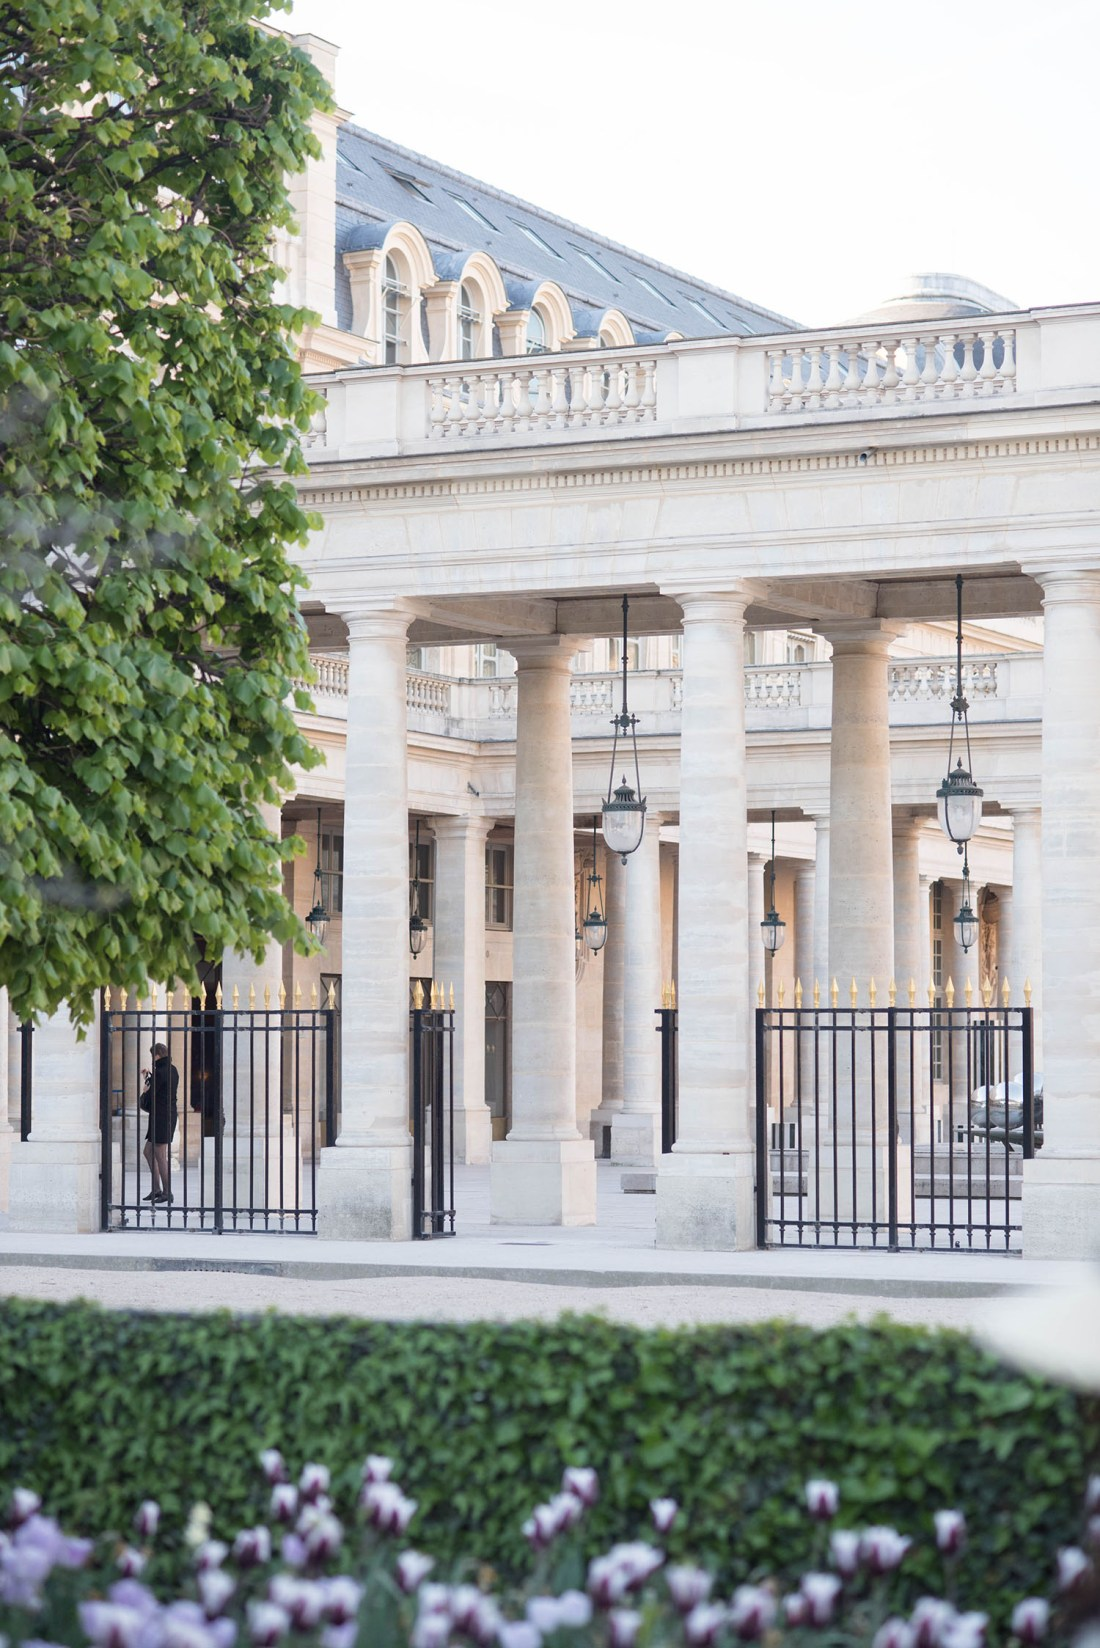 The columns of the Palais Royal, captured by travel blogger Cee Fardoe of Coco & Vera